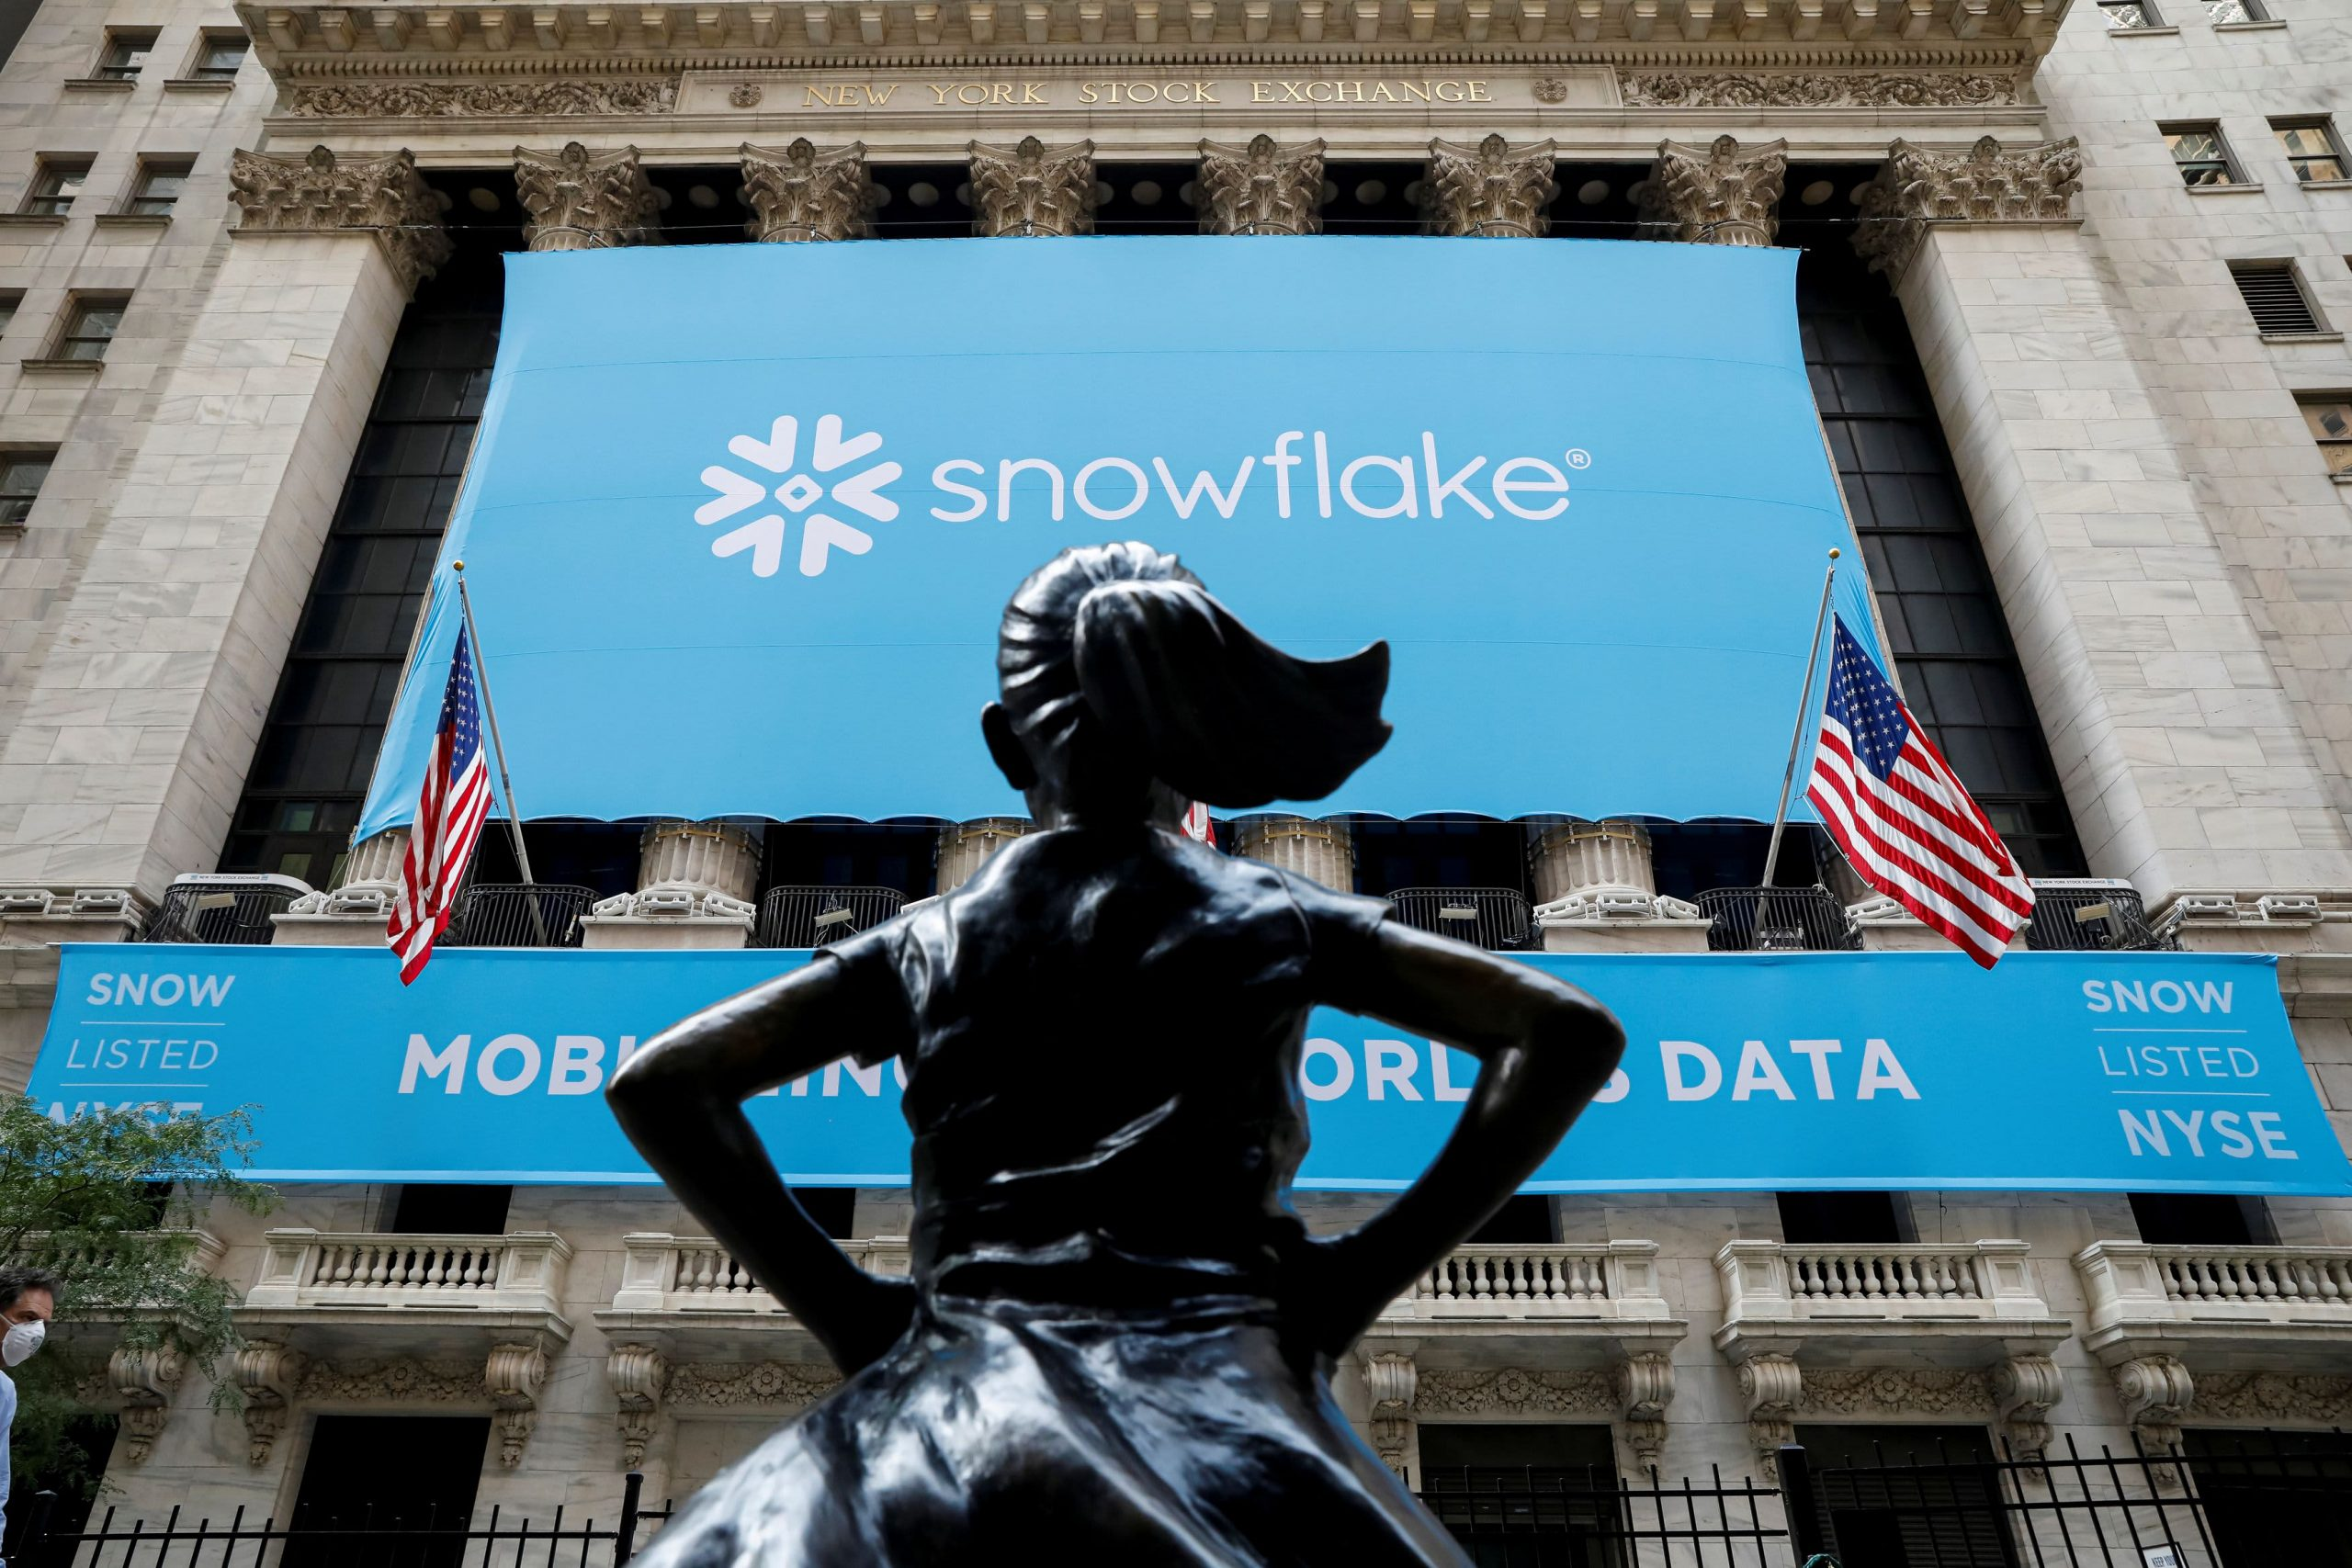 Snowflake CEO urges investors to be patient with stock during multiyear cloud transition